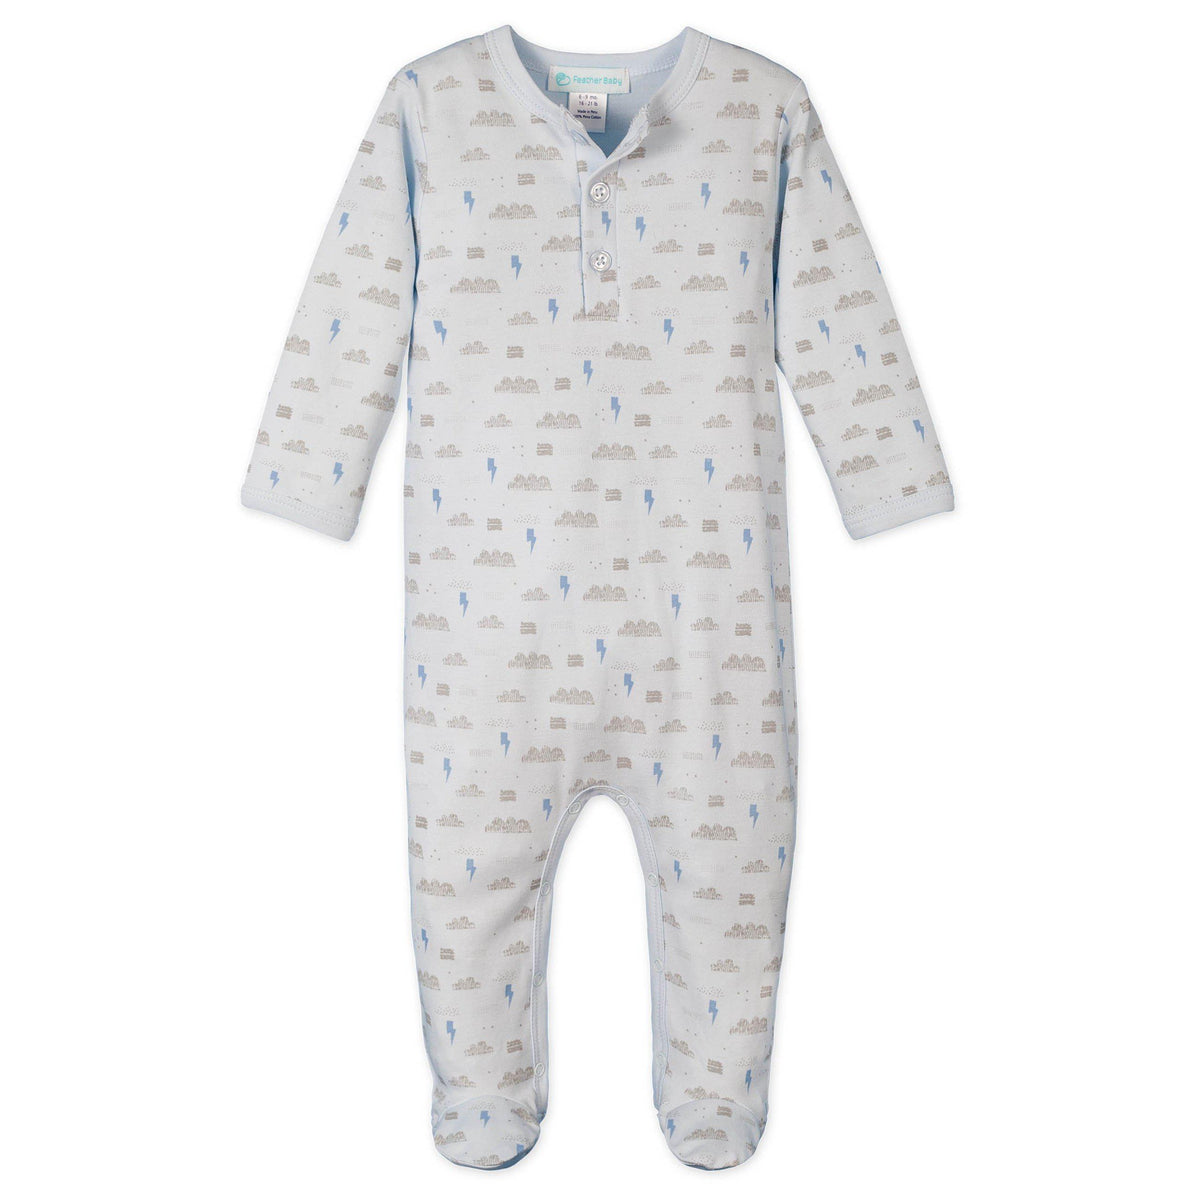 Henley Footie ~ Stormy Sky - on Baby Blue-Feather Baby-Footies-0-3 Months or 7-11 lb-Free Shipping-Gift Wrap-Pima Cotton